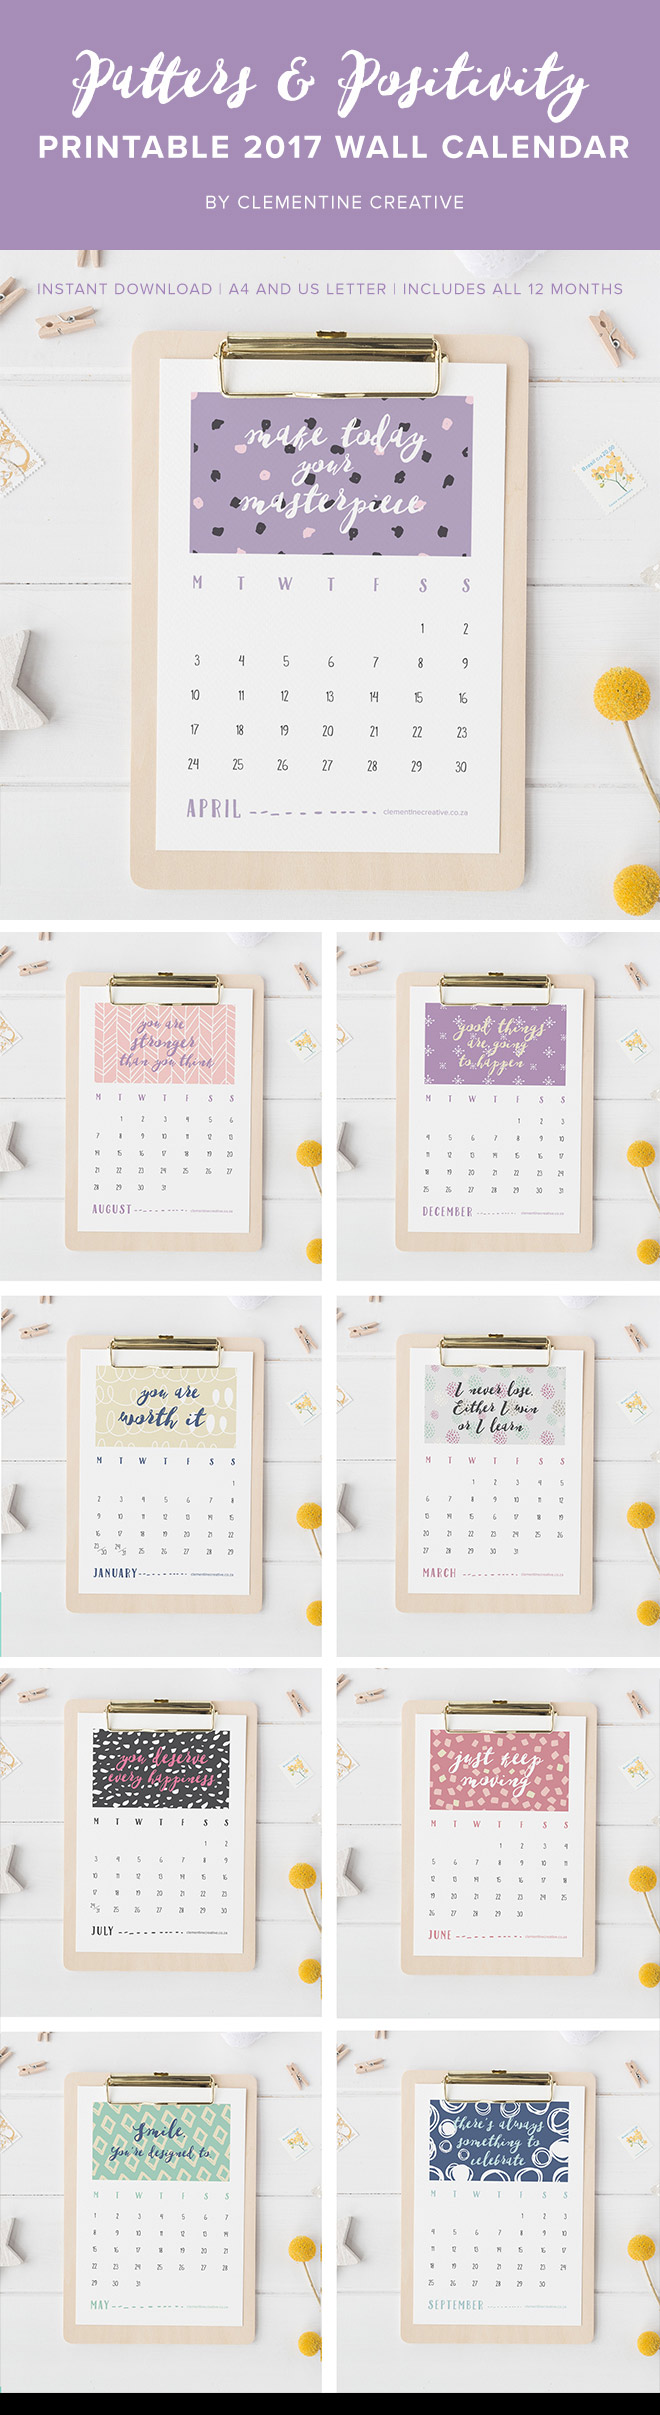 This printable 2017 wall calendar with positive quotes will encourage you to stay positive, and remind you that you are an amazing person. Download here.